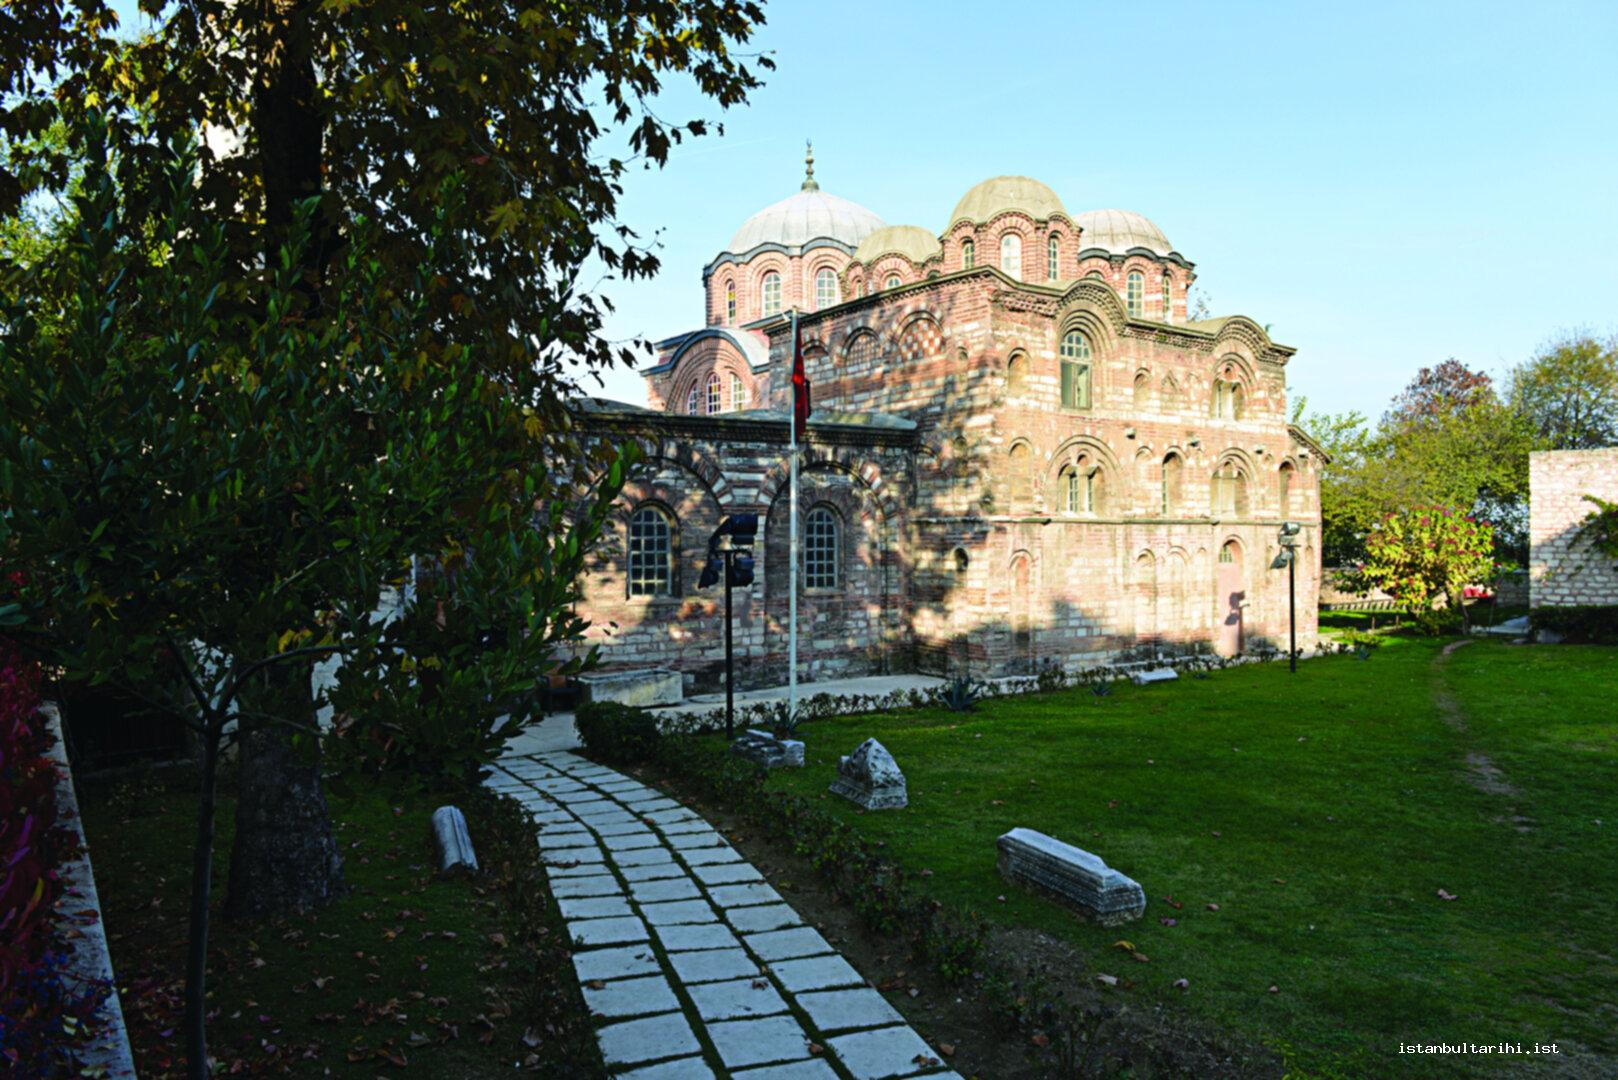 11- The Church of Pammakaristos which was transformed into a mosque in 1568 with the name of Fethiye Mosque.